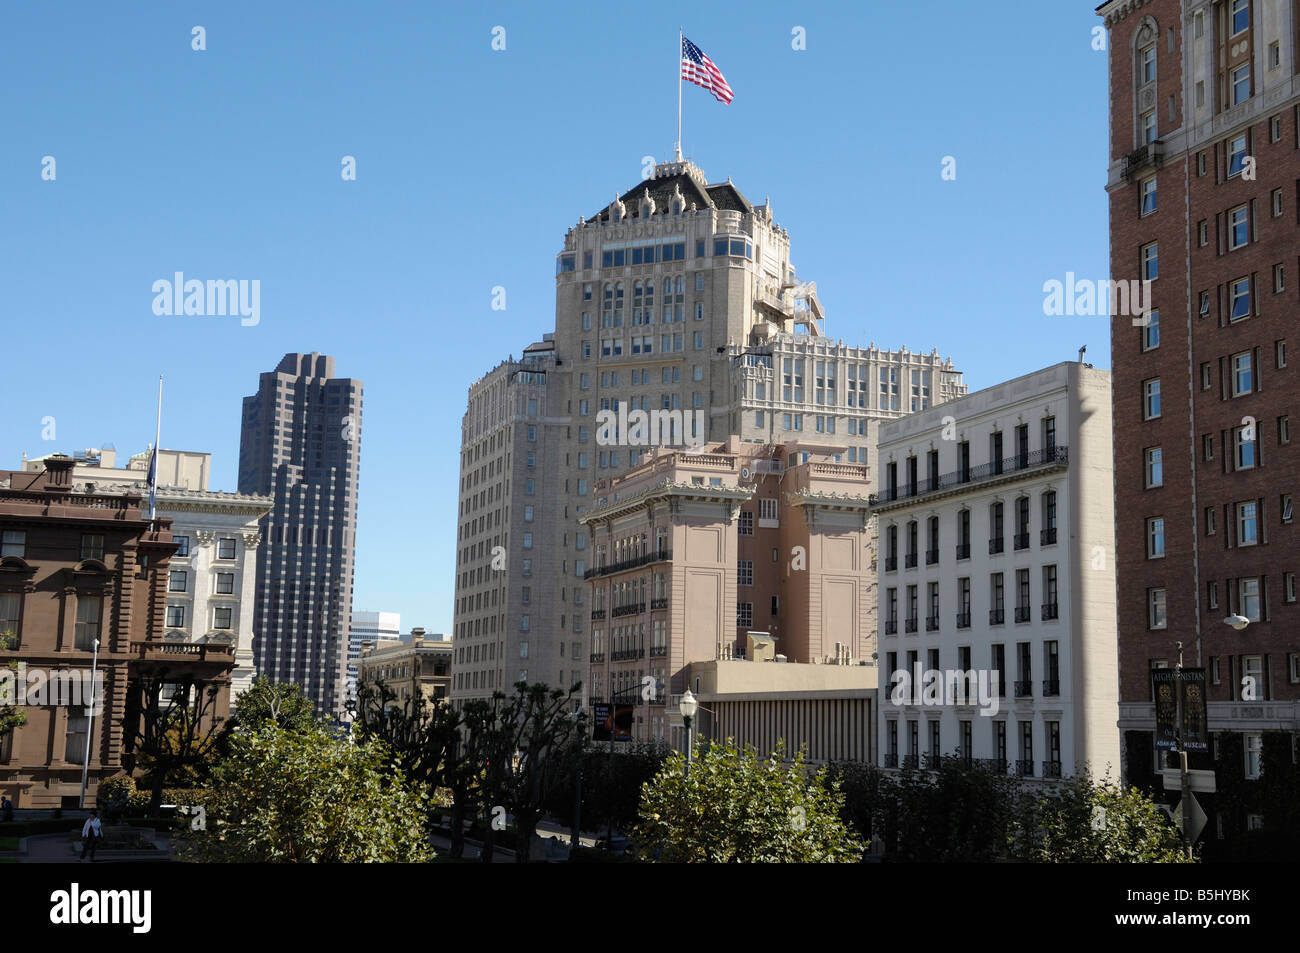 The Mark Hopkins Hotel in San Francisco, known for the famous 'Top of the Mark' club made famous during - Stock Image